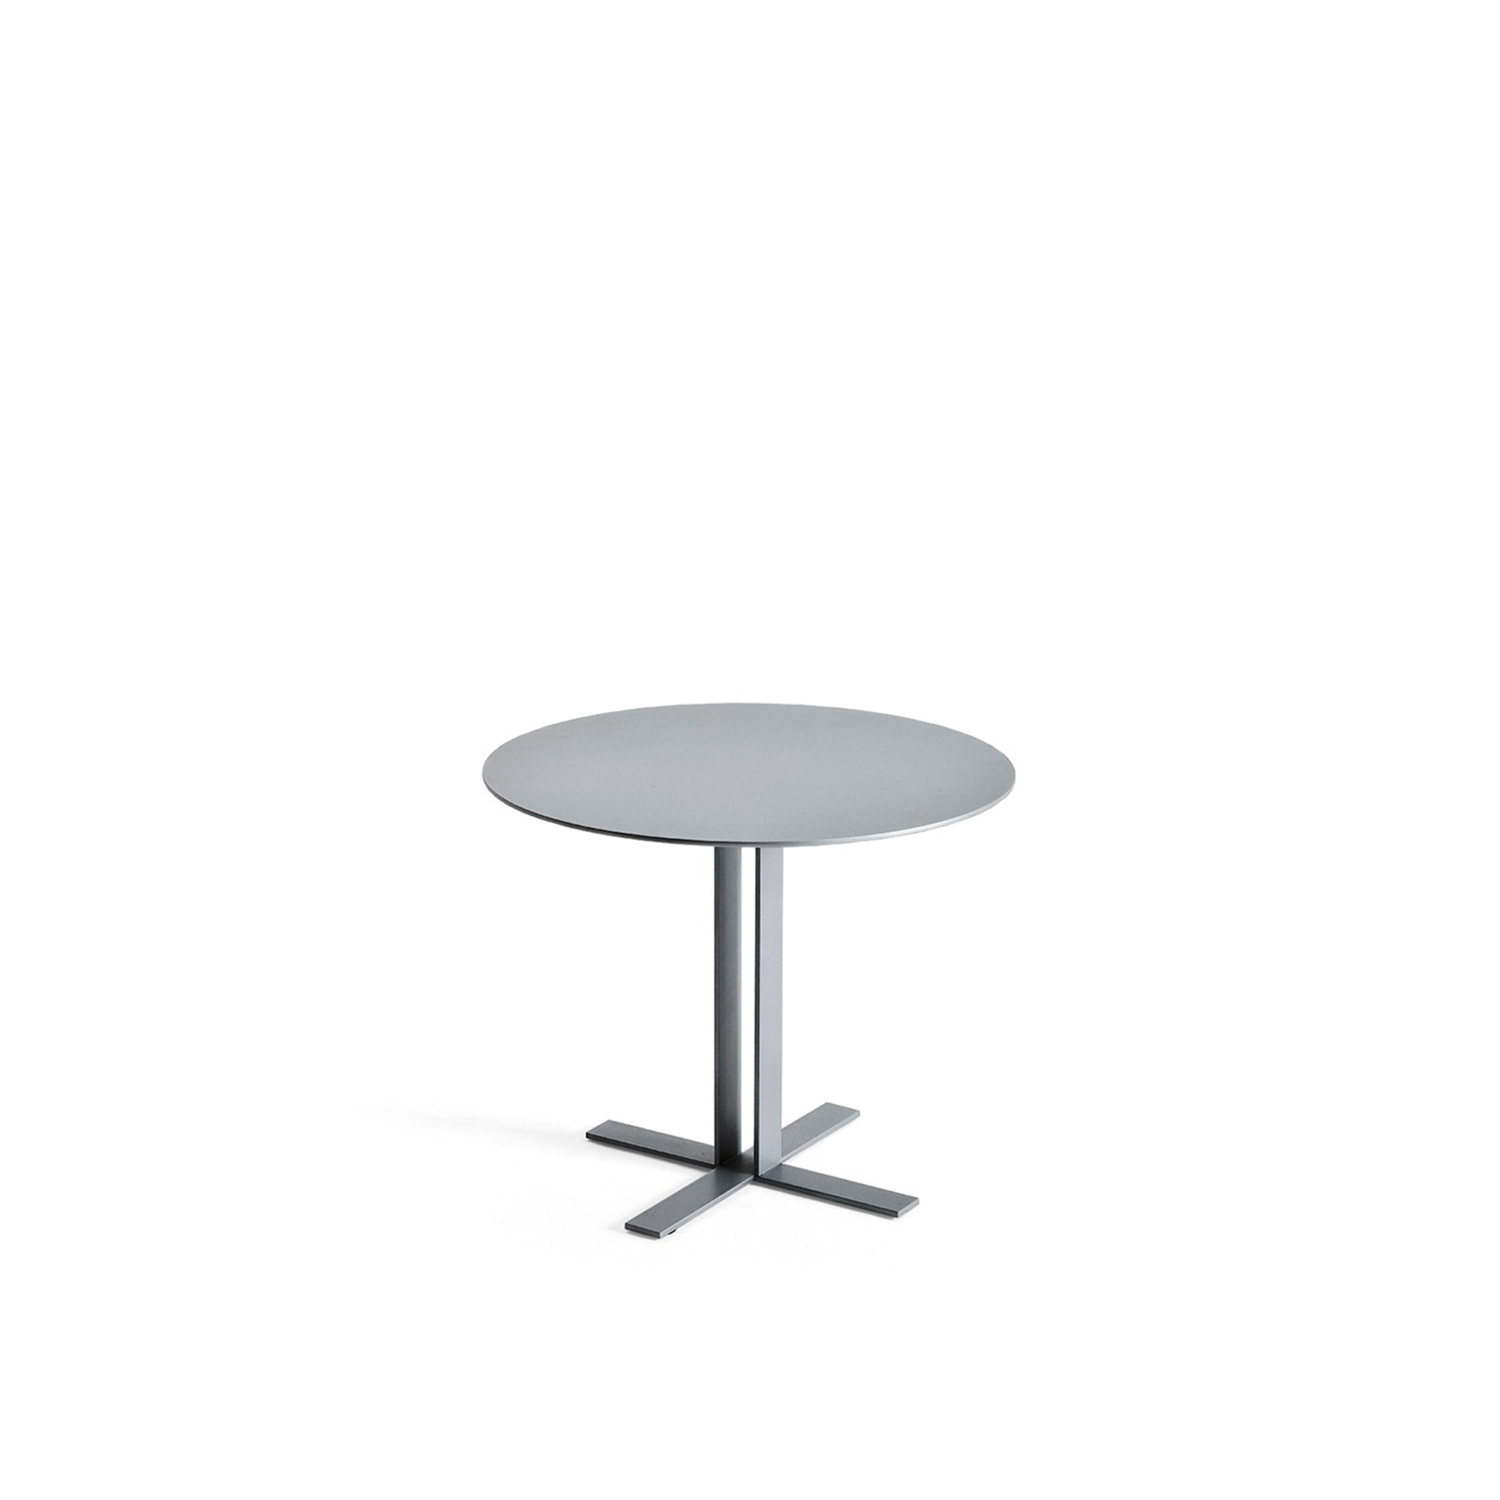 """Più Coffee Table - Più is a light, crisp and stylish table with a strong, clean design and an elegant, dainty spirit. Metal base and MDF top. Available in a matt lacquered finish.  Materials: Top in MDF h 16 mm matt painted mounted on òegs realized in metal plates by 40x6 mm section welded to """"L"""" with base. 